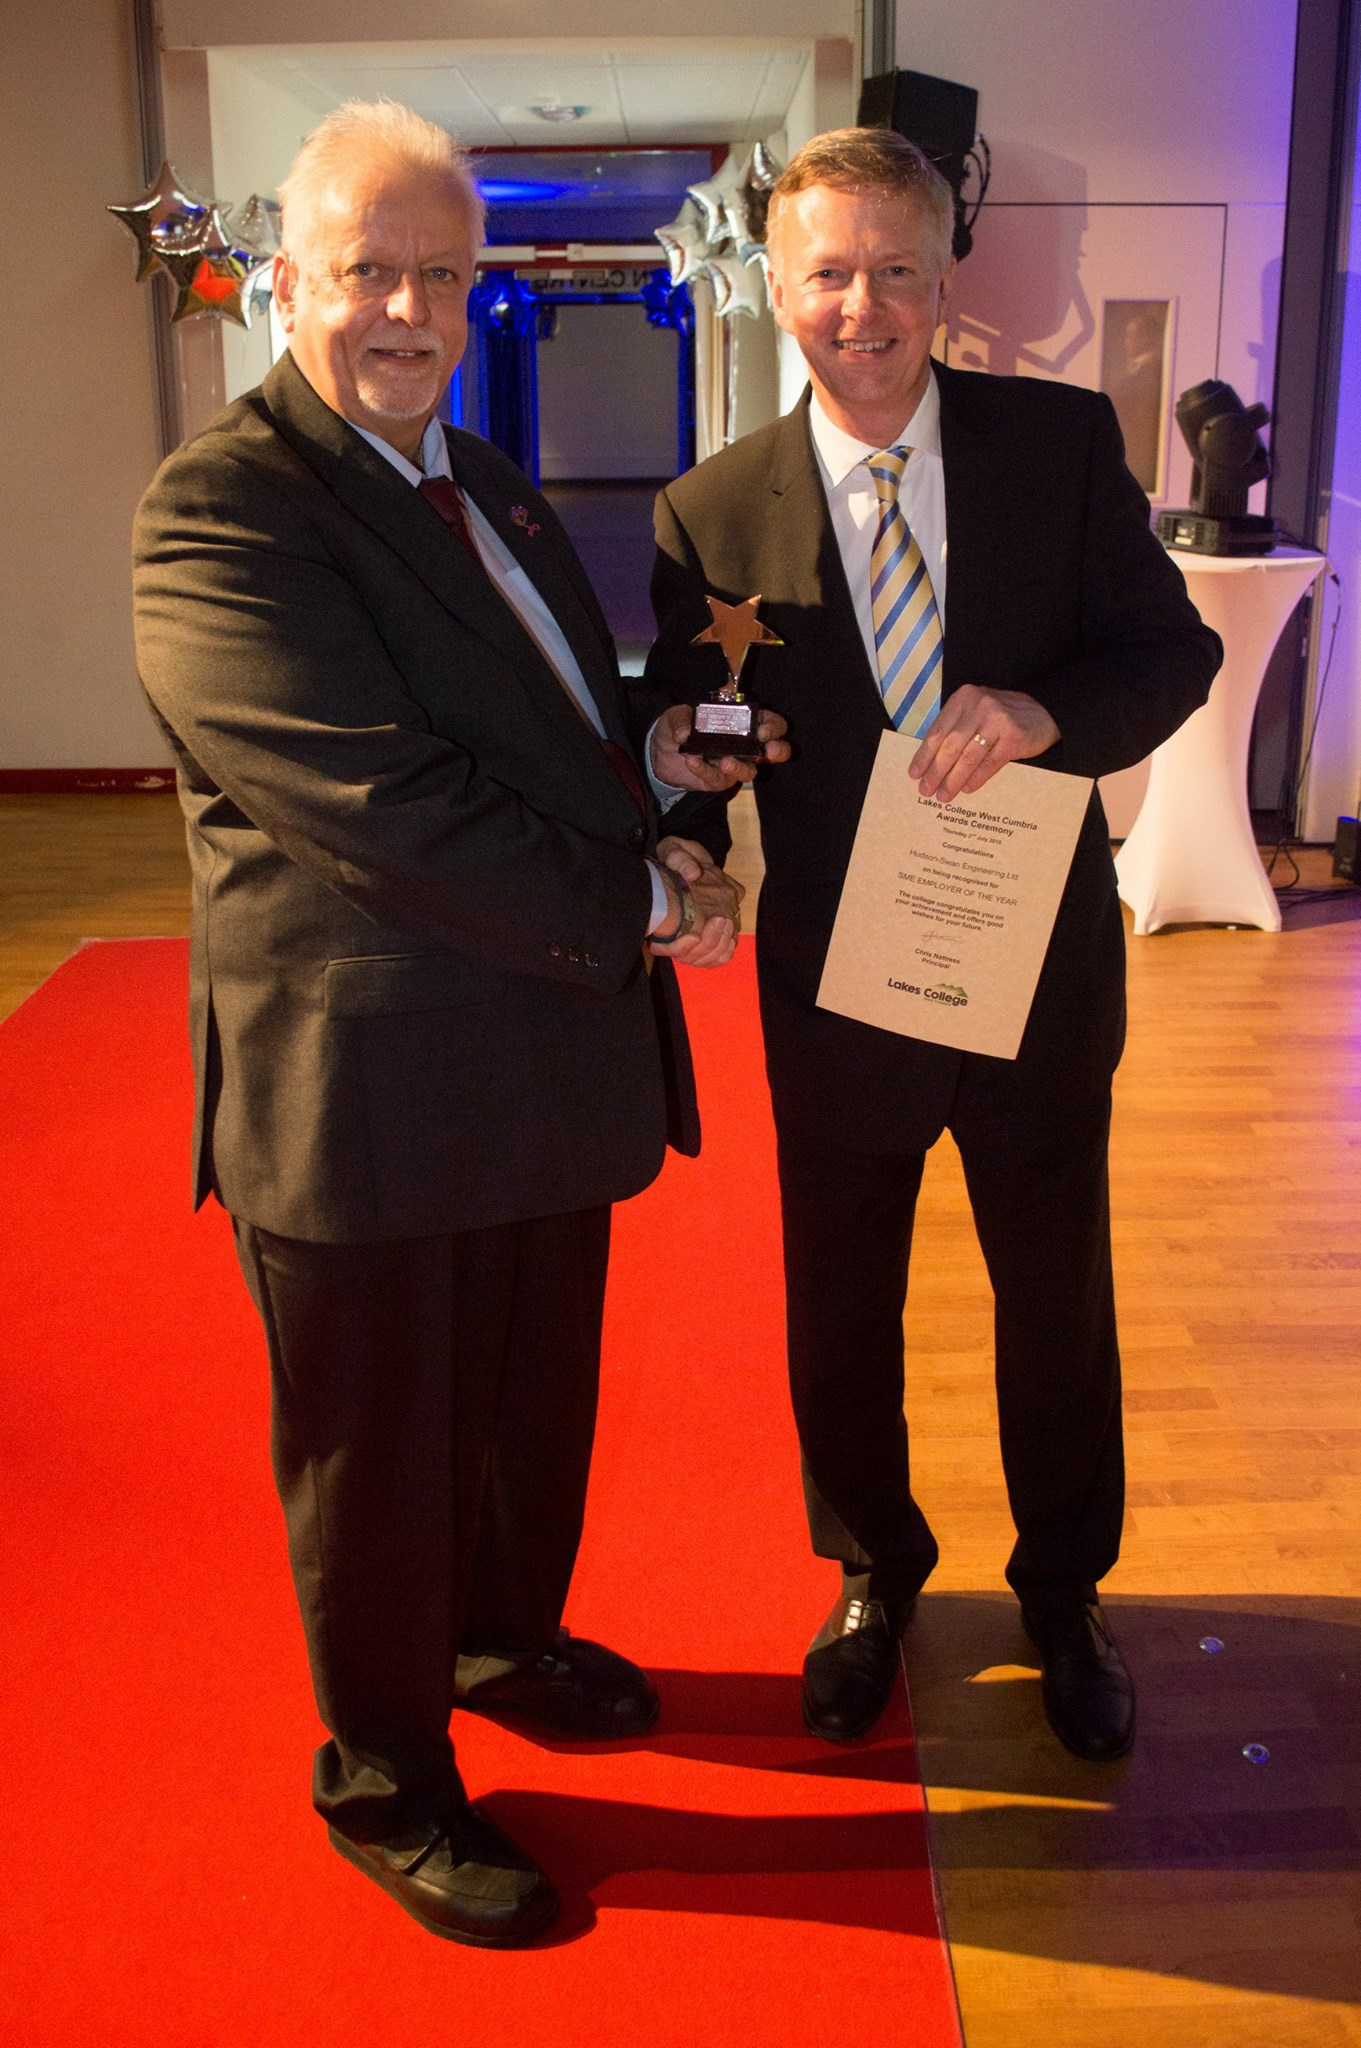 Operations Manager- mike layfield RECEIVING the award on thursday evening at lakes college